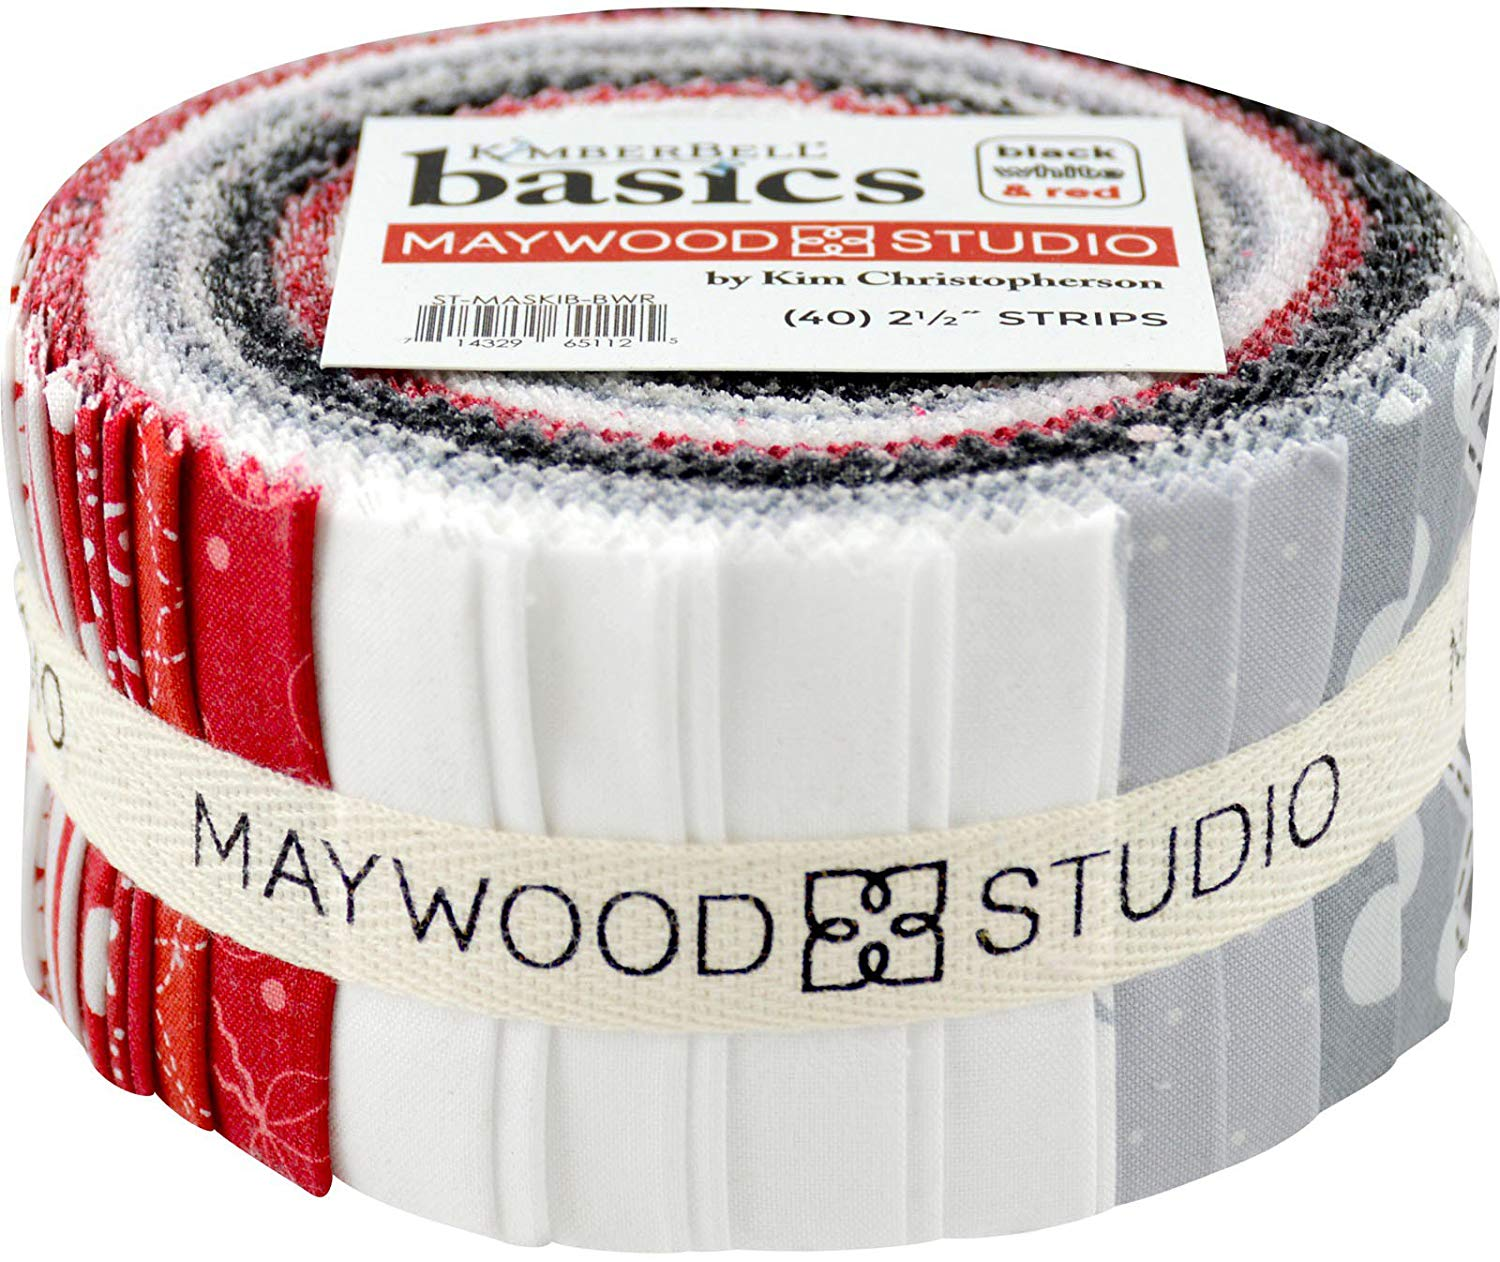 Basics: Black White & Red Strips by KimberBell; 40 2.5-inch Strips - Maywood